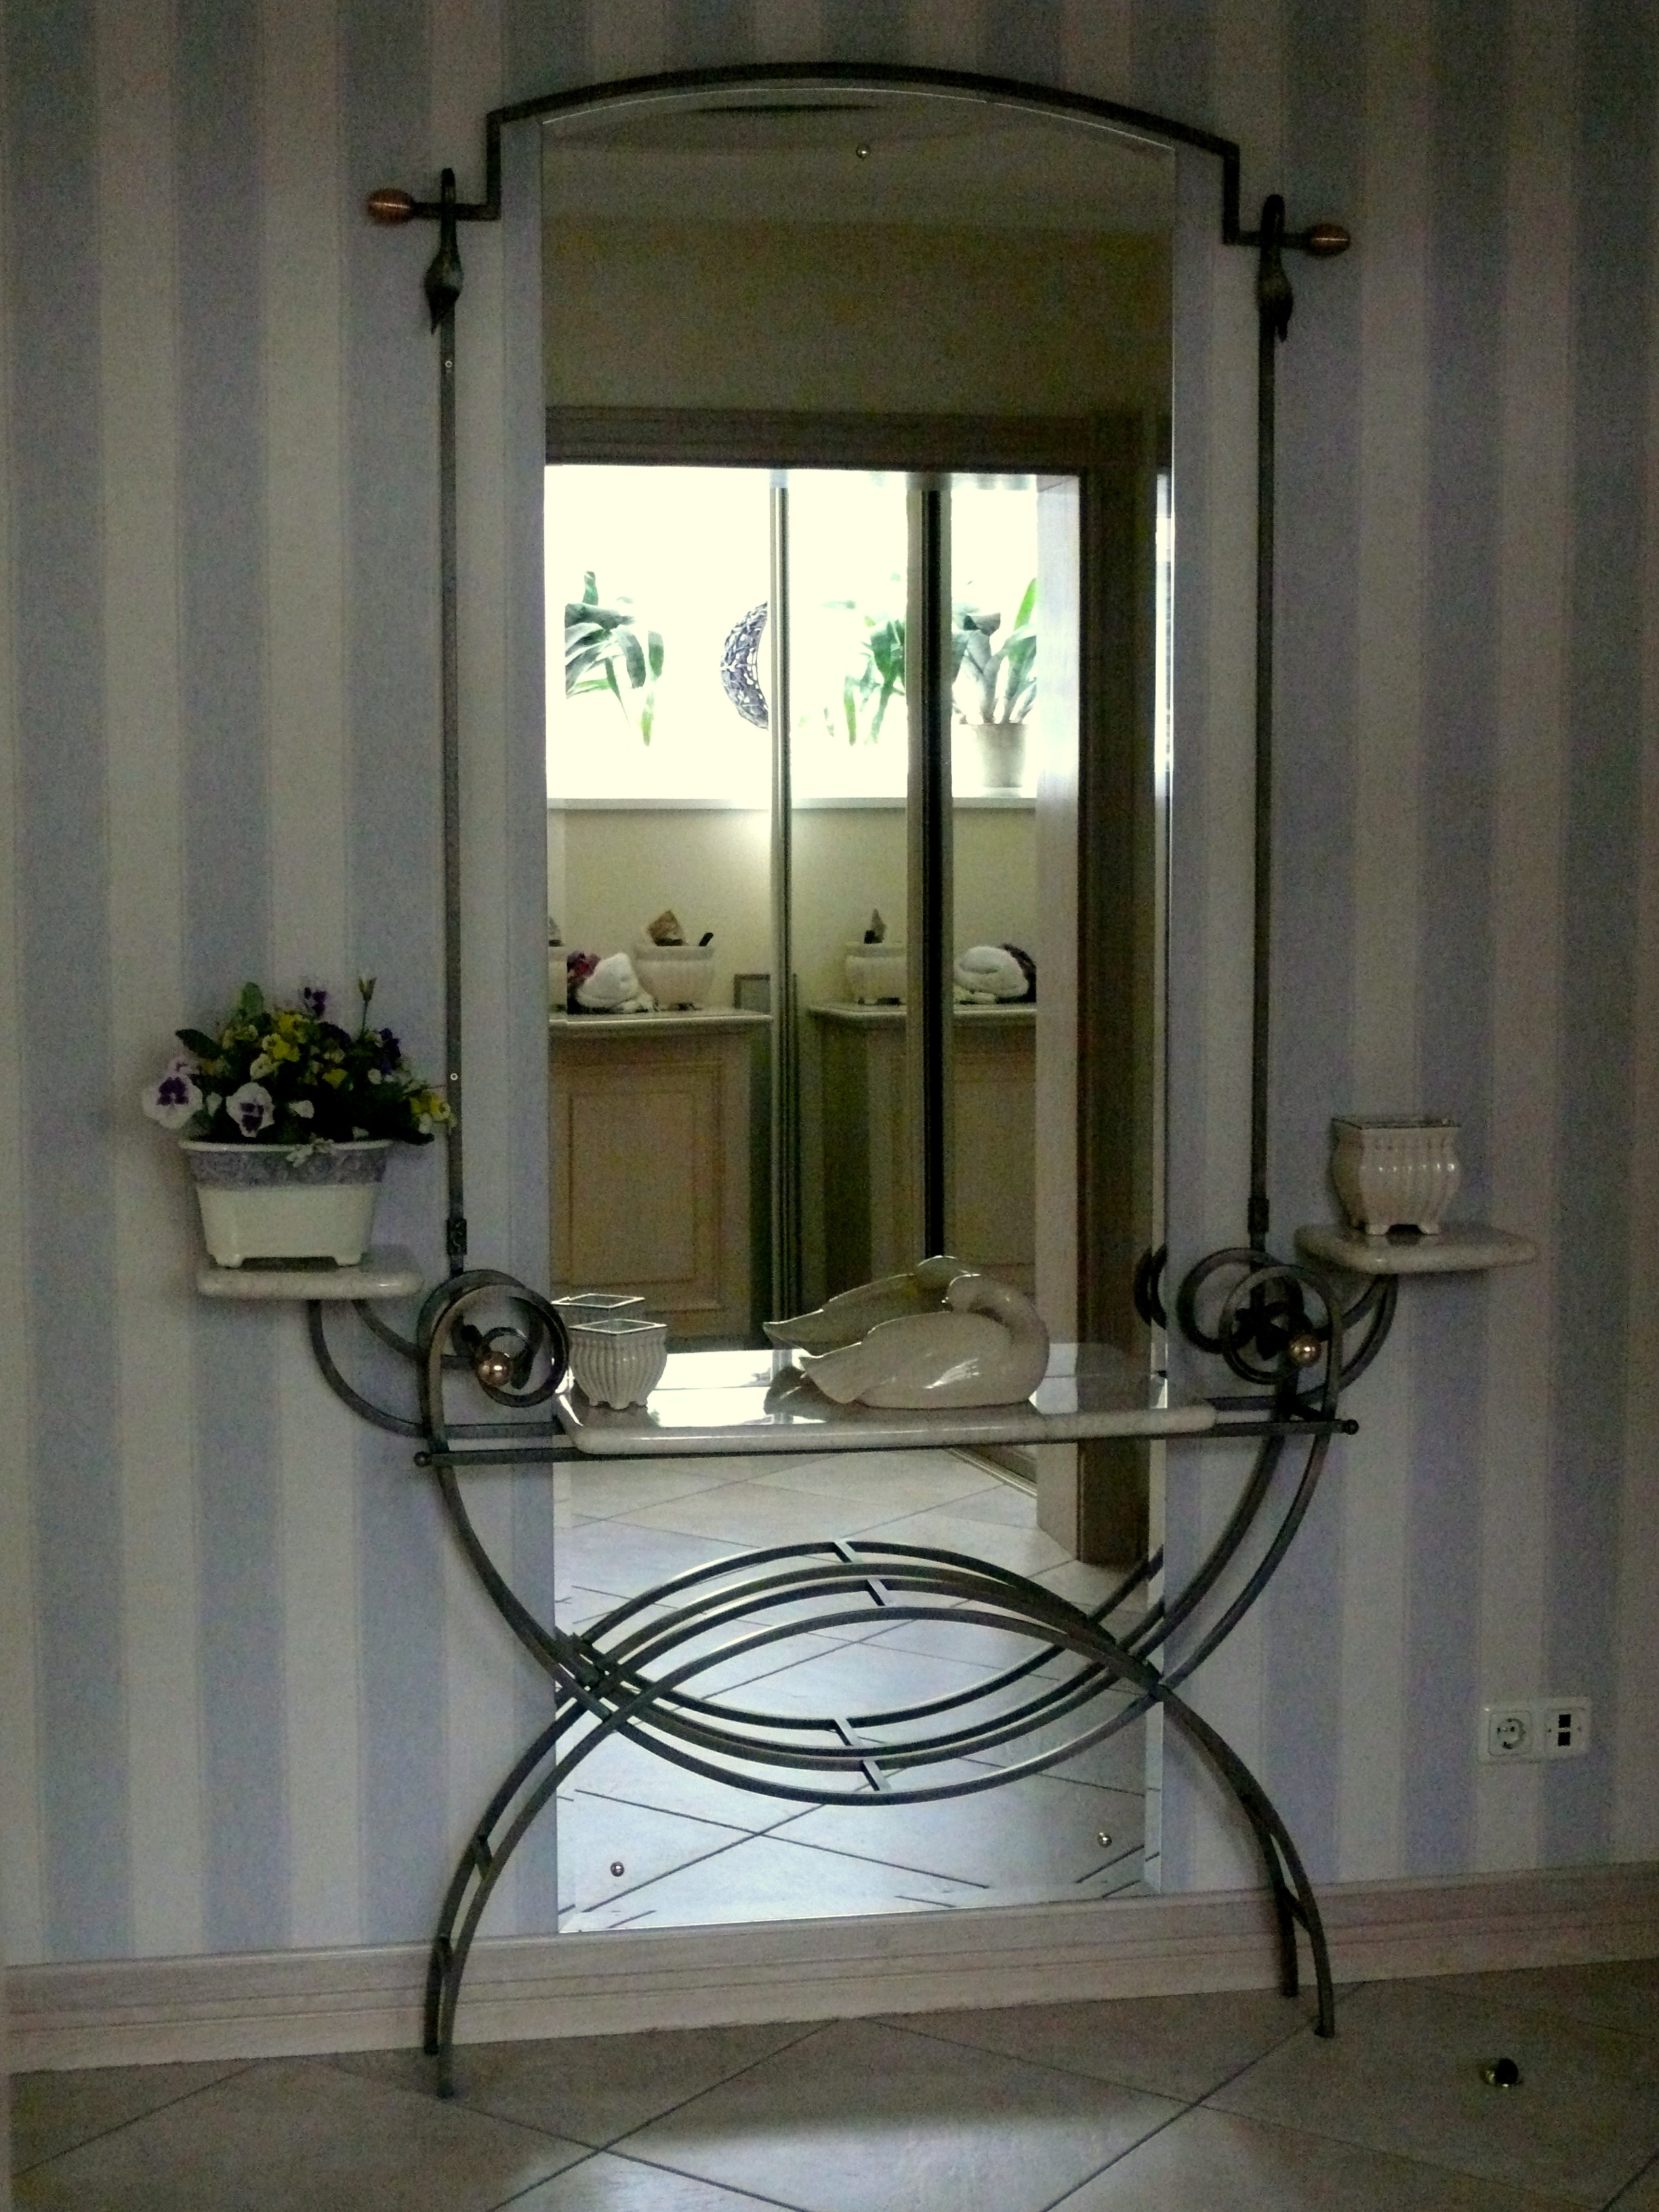 Wrought Iron In Home Decor L Essenziale Throughout Black Wrought Iron Mirror (Image 13 of 15)